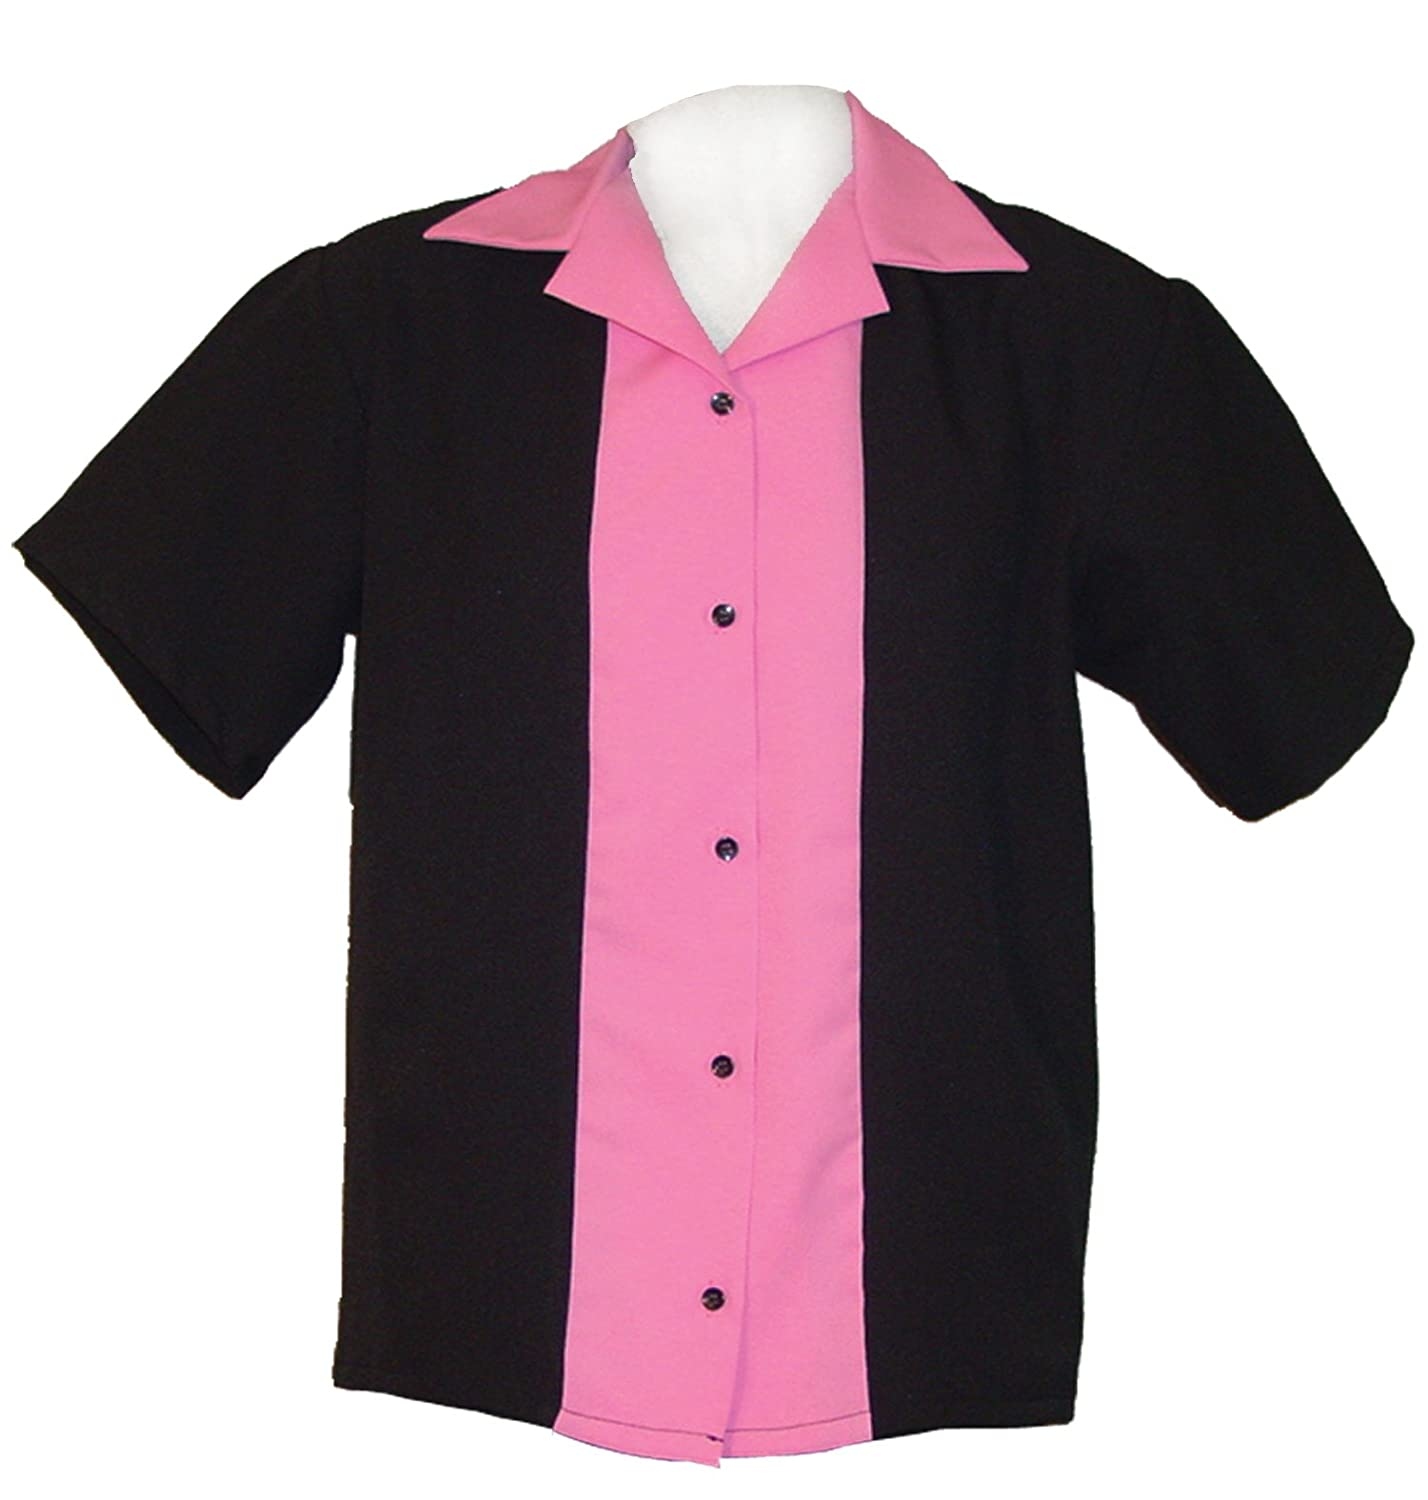 Tutti Ladies Retro Bowling Shirt 50's Style ~ Classic 57 Womens Bowling Shirts by